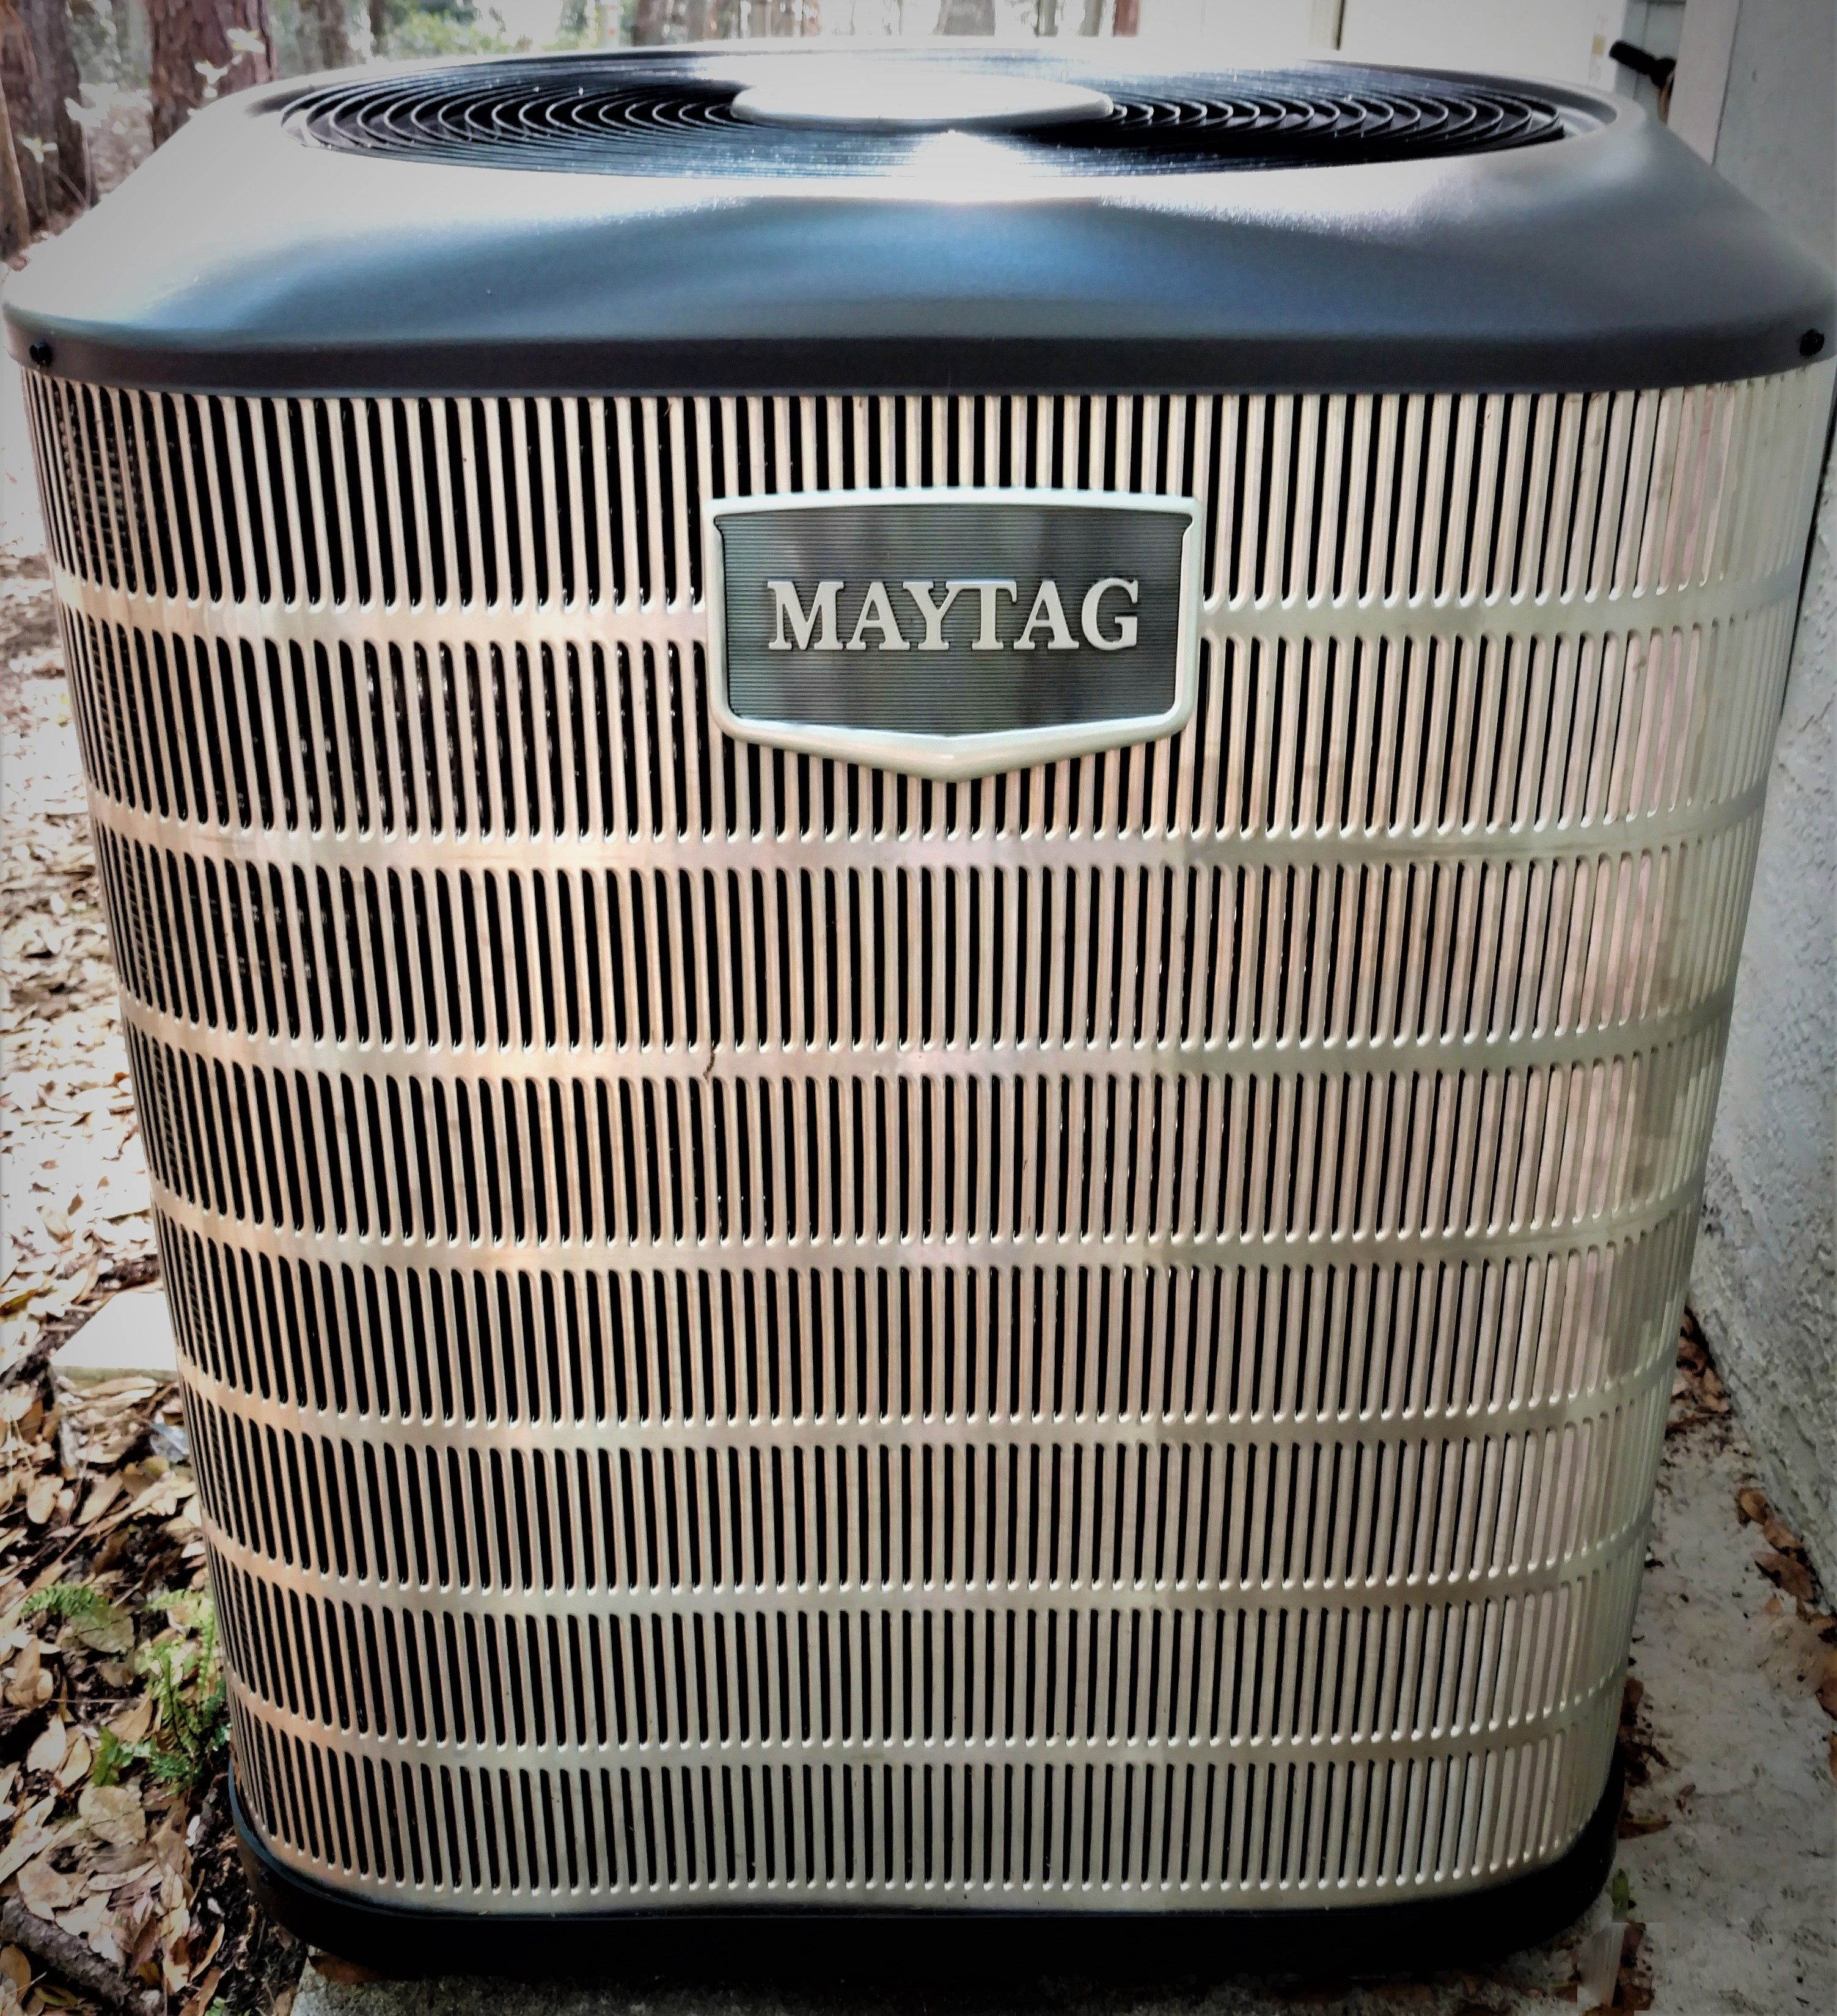 Maytag 19 Seer iQ Drive Heat Pump Air Conditioning System